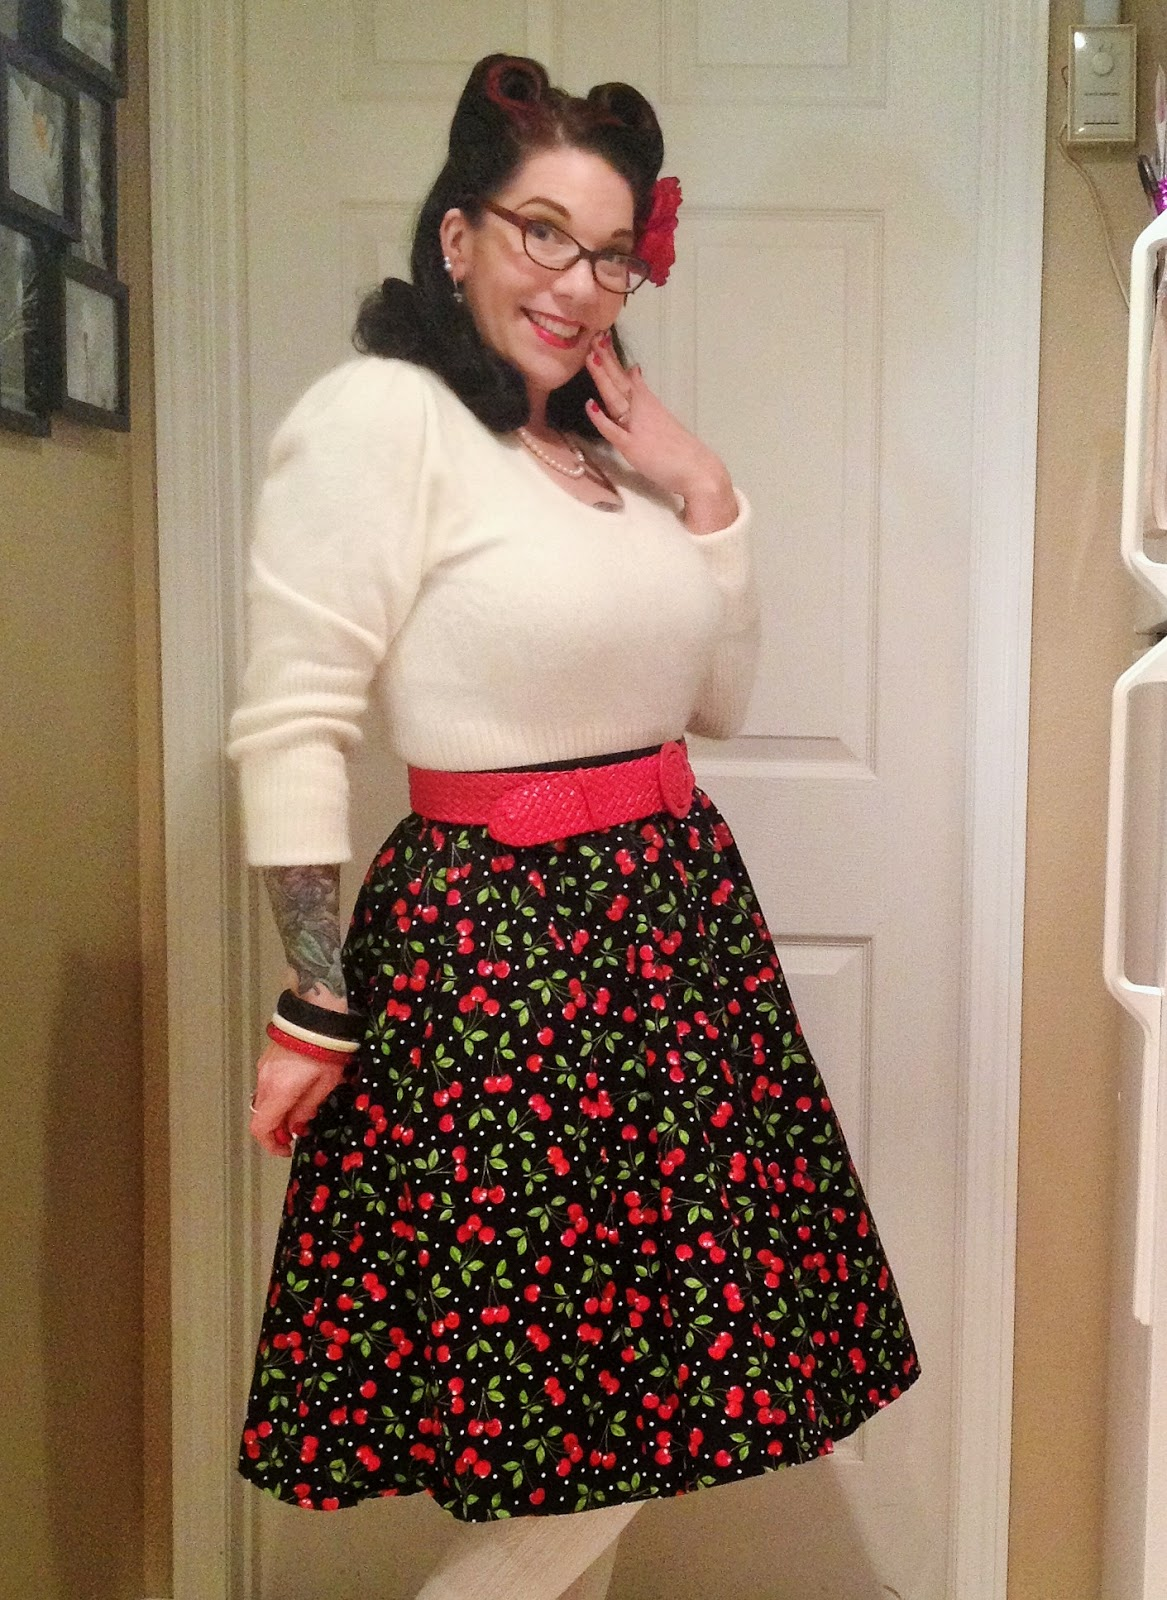 Vintage holiday outfit - She Knits in Pearls